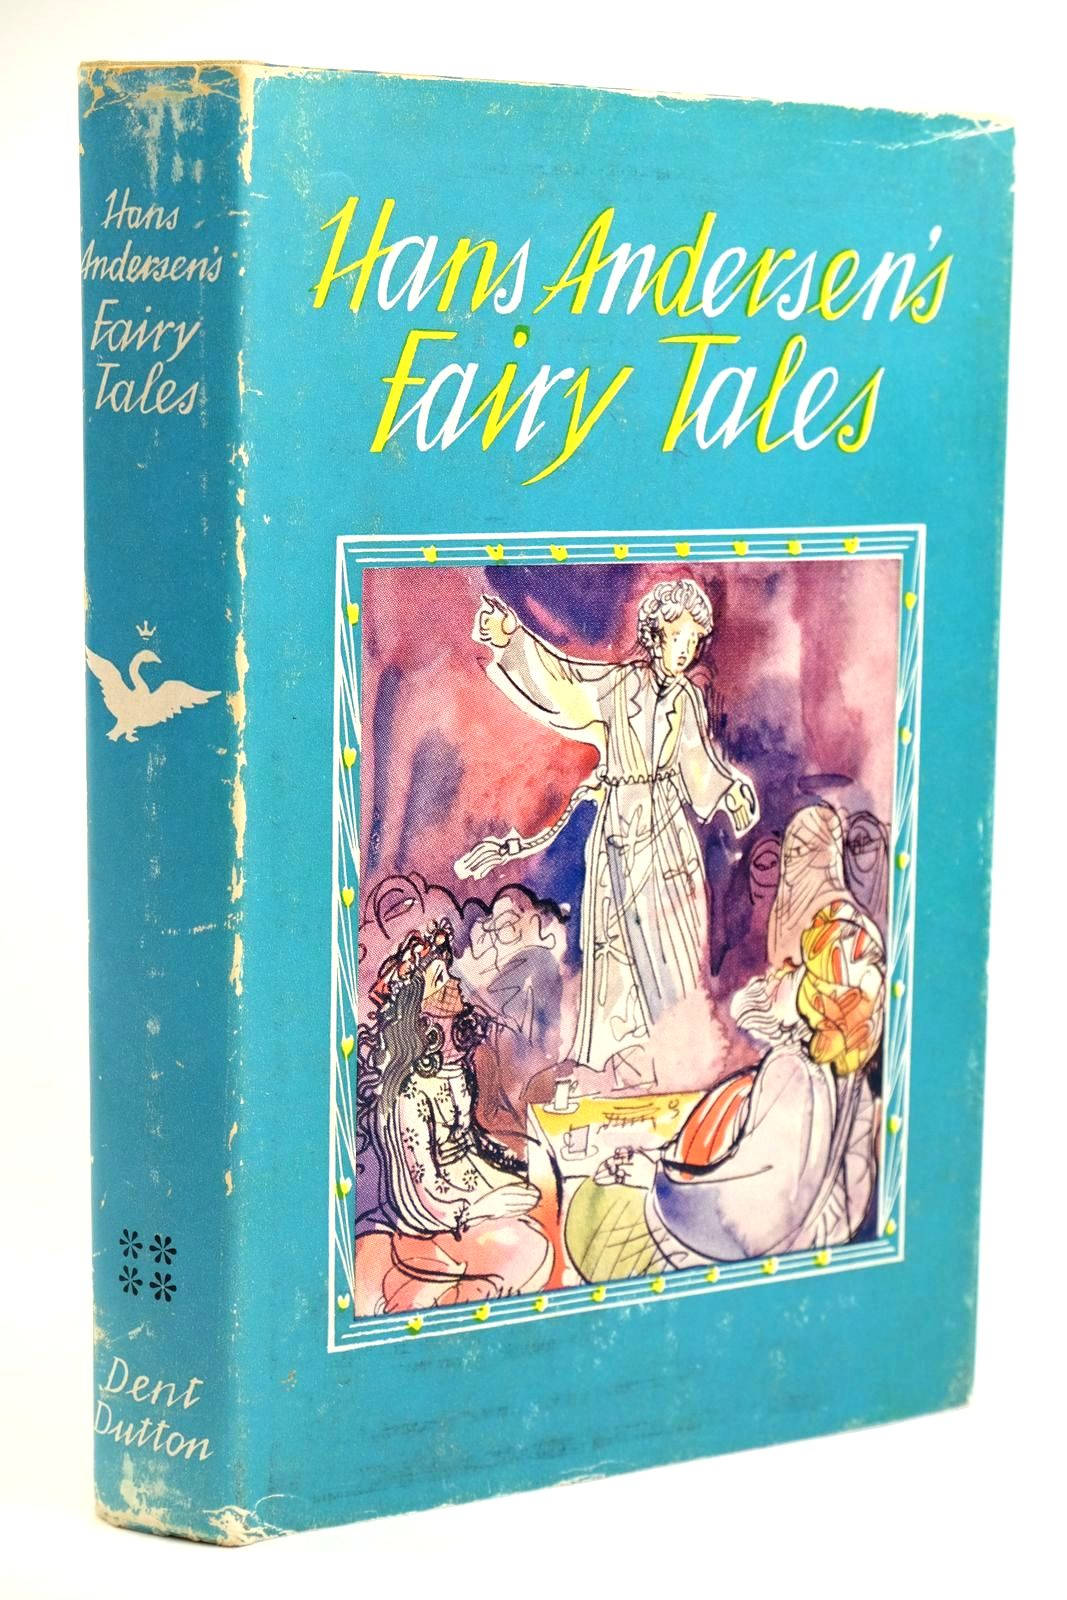 Photo of HANS ANDERSEN'S FAIRY TALES written by Spink, Reginald Andersen, Hans Christian illustrated by Baumhauer, H. published by J.M. Dent & Sons Ltd. (STOCK CODE: 1319182)  for sale by Stella & Rose's Books